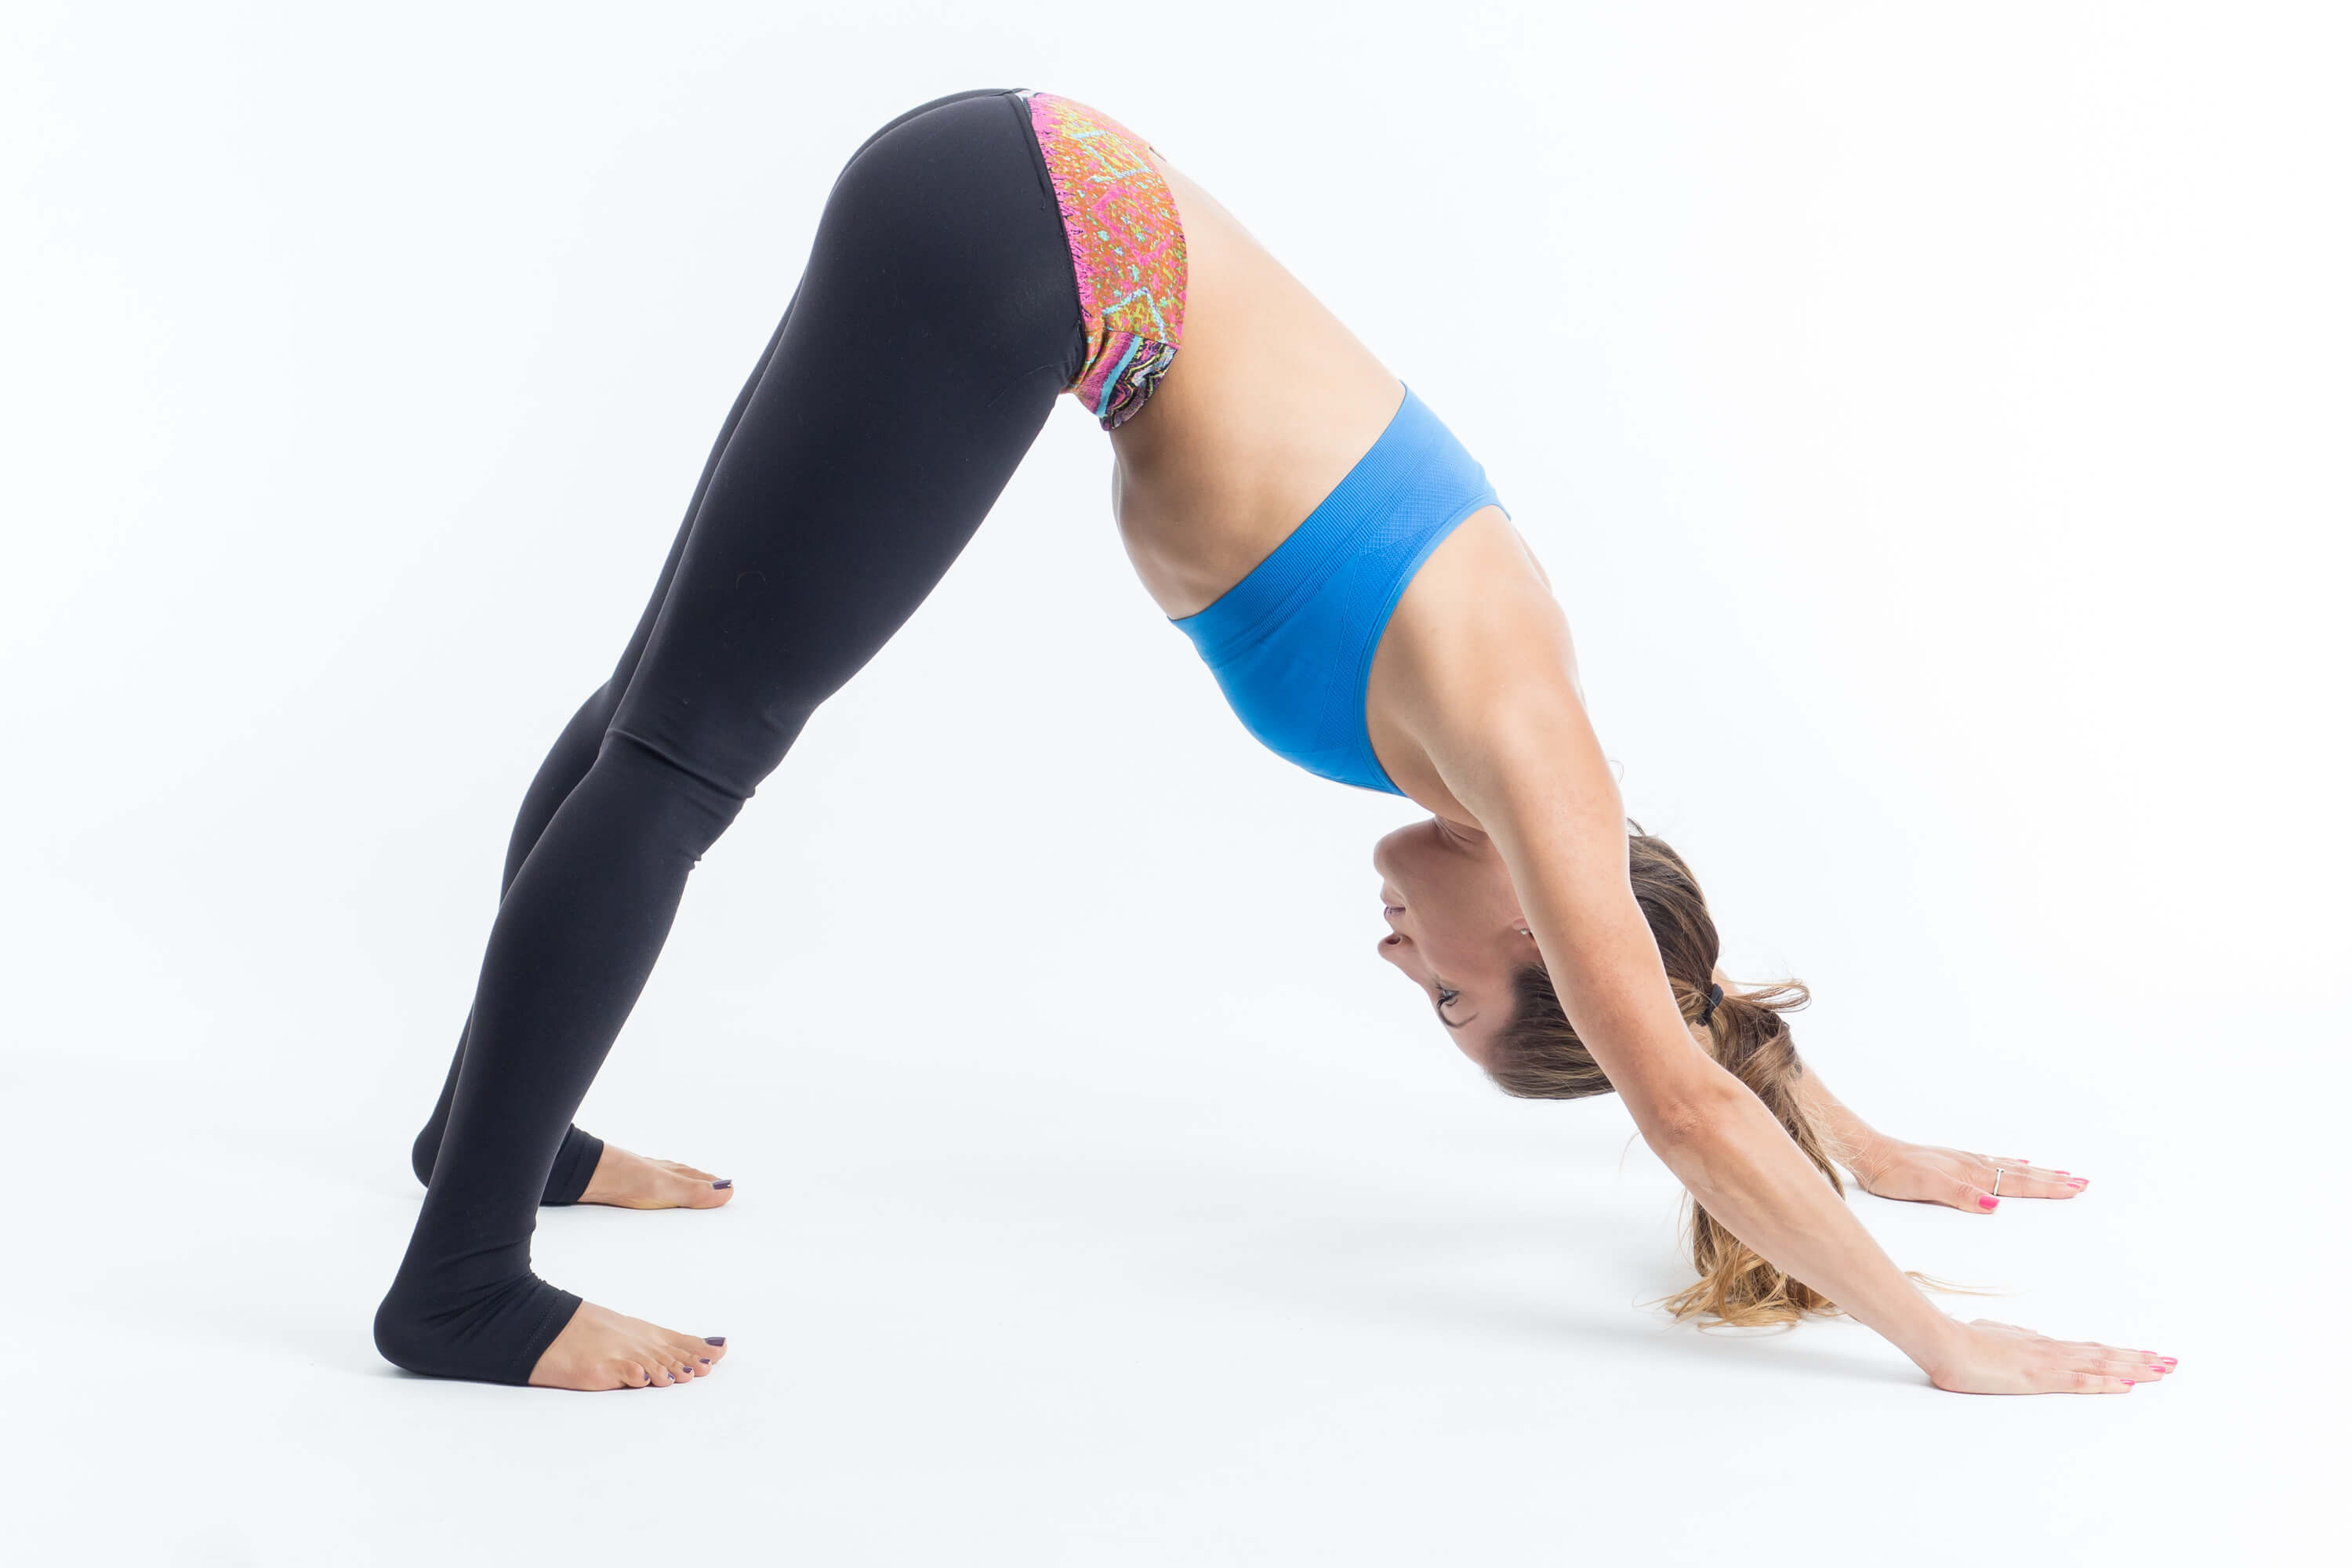 Yoga Poses for Runners - Downward Dog